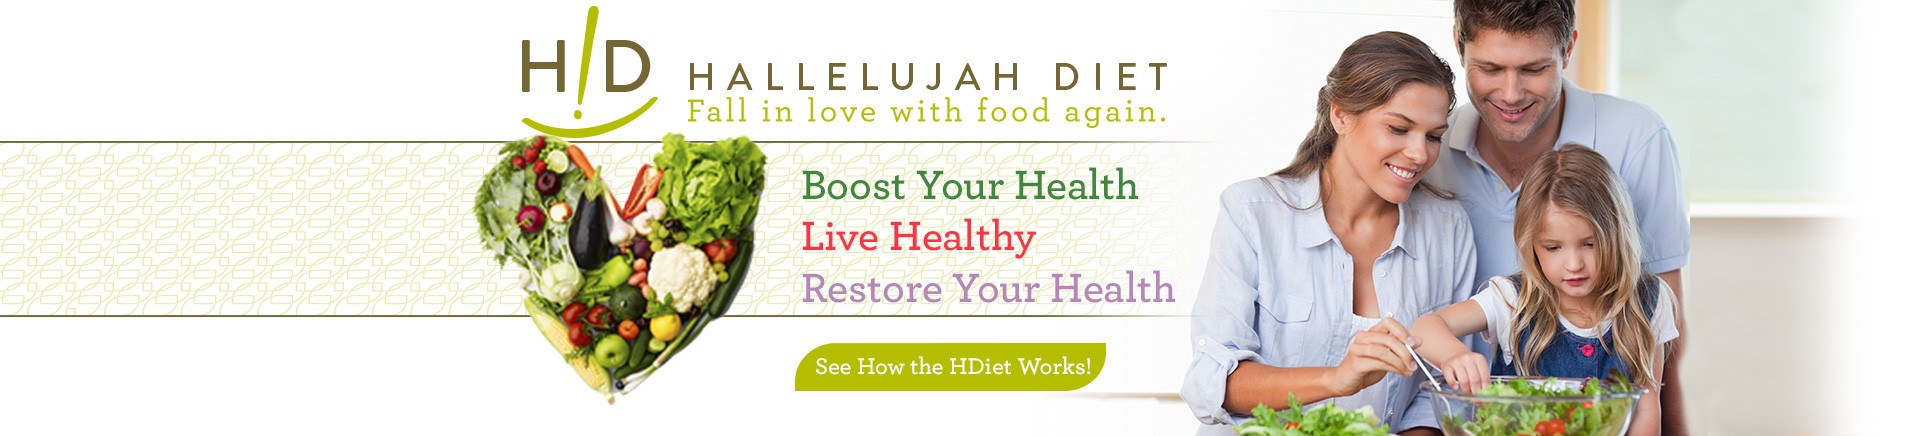 About-The-Hallelujah-Diet-Banner-Slider-MyHDiet-Homepage-Final1